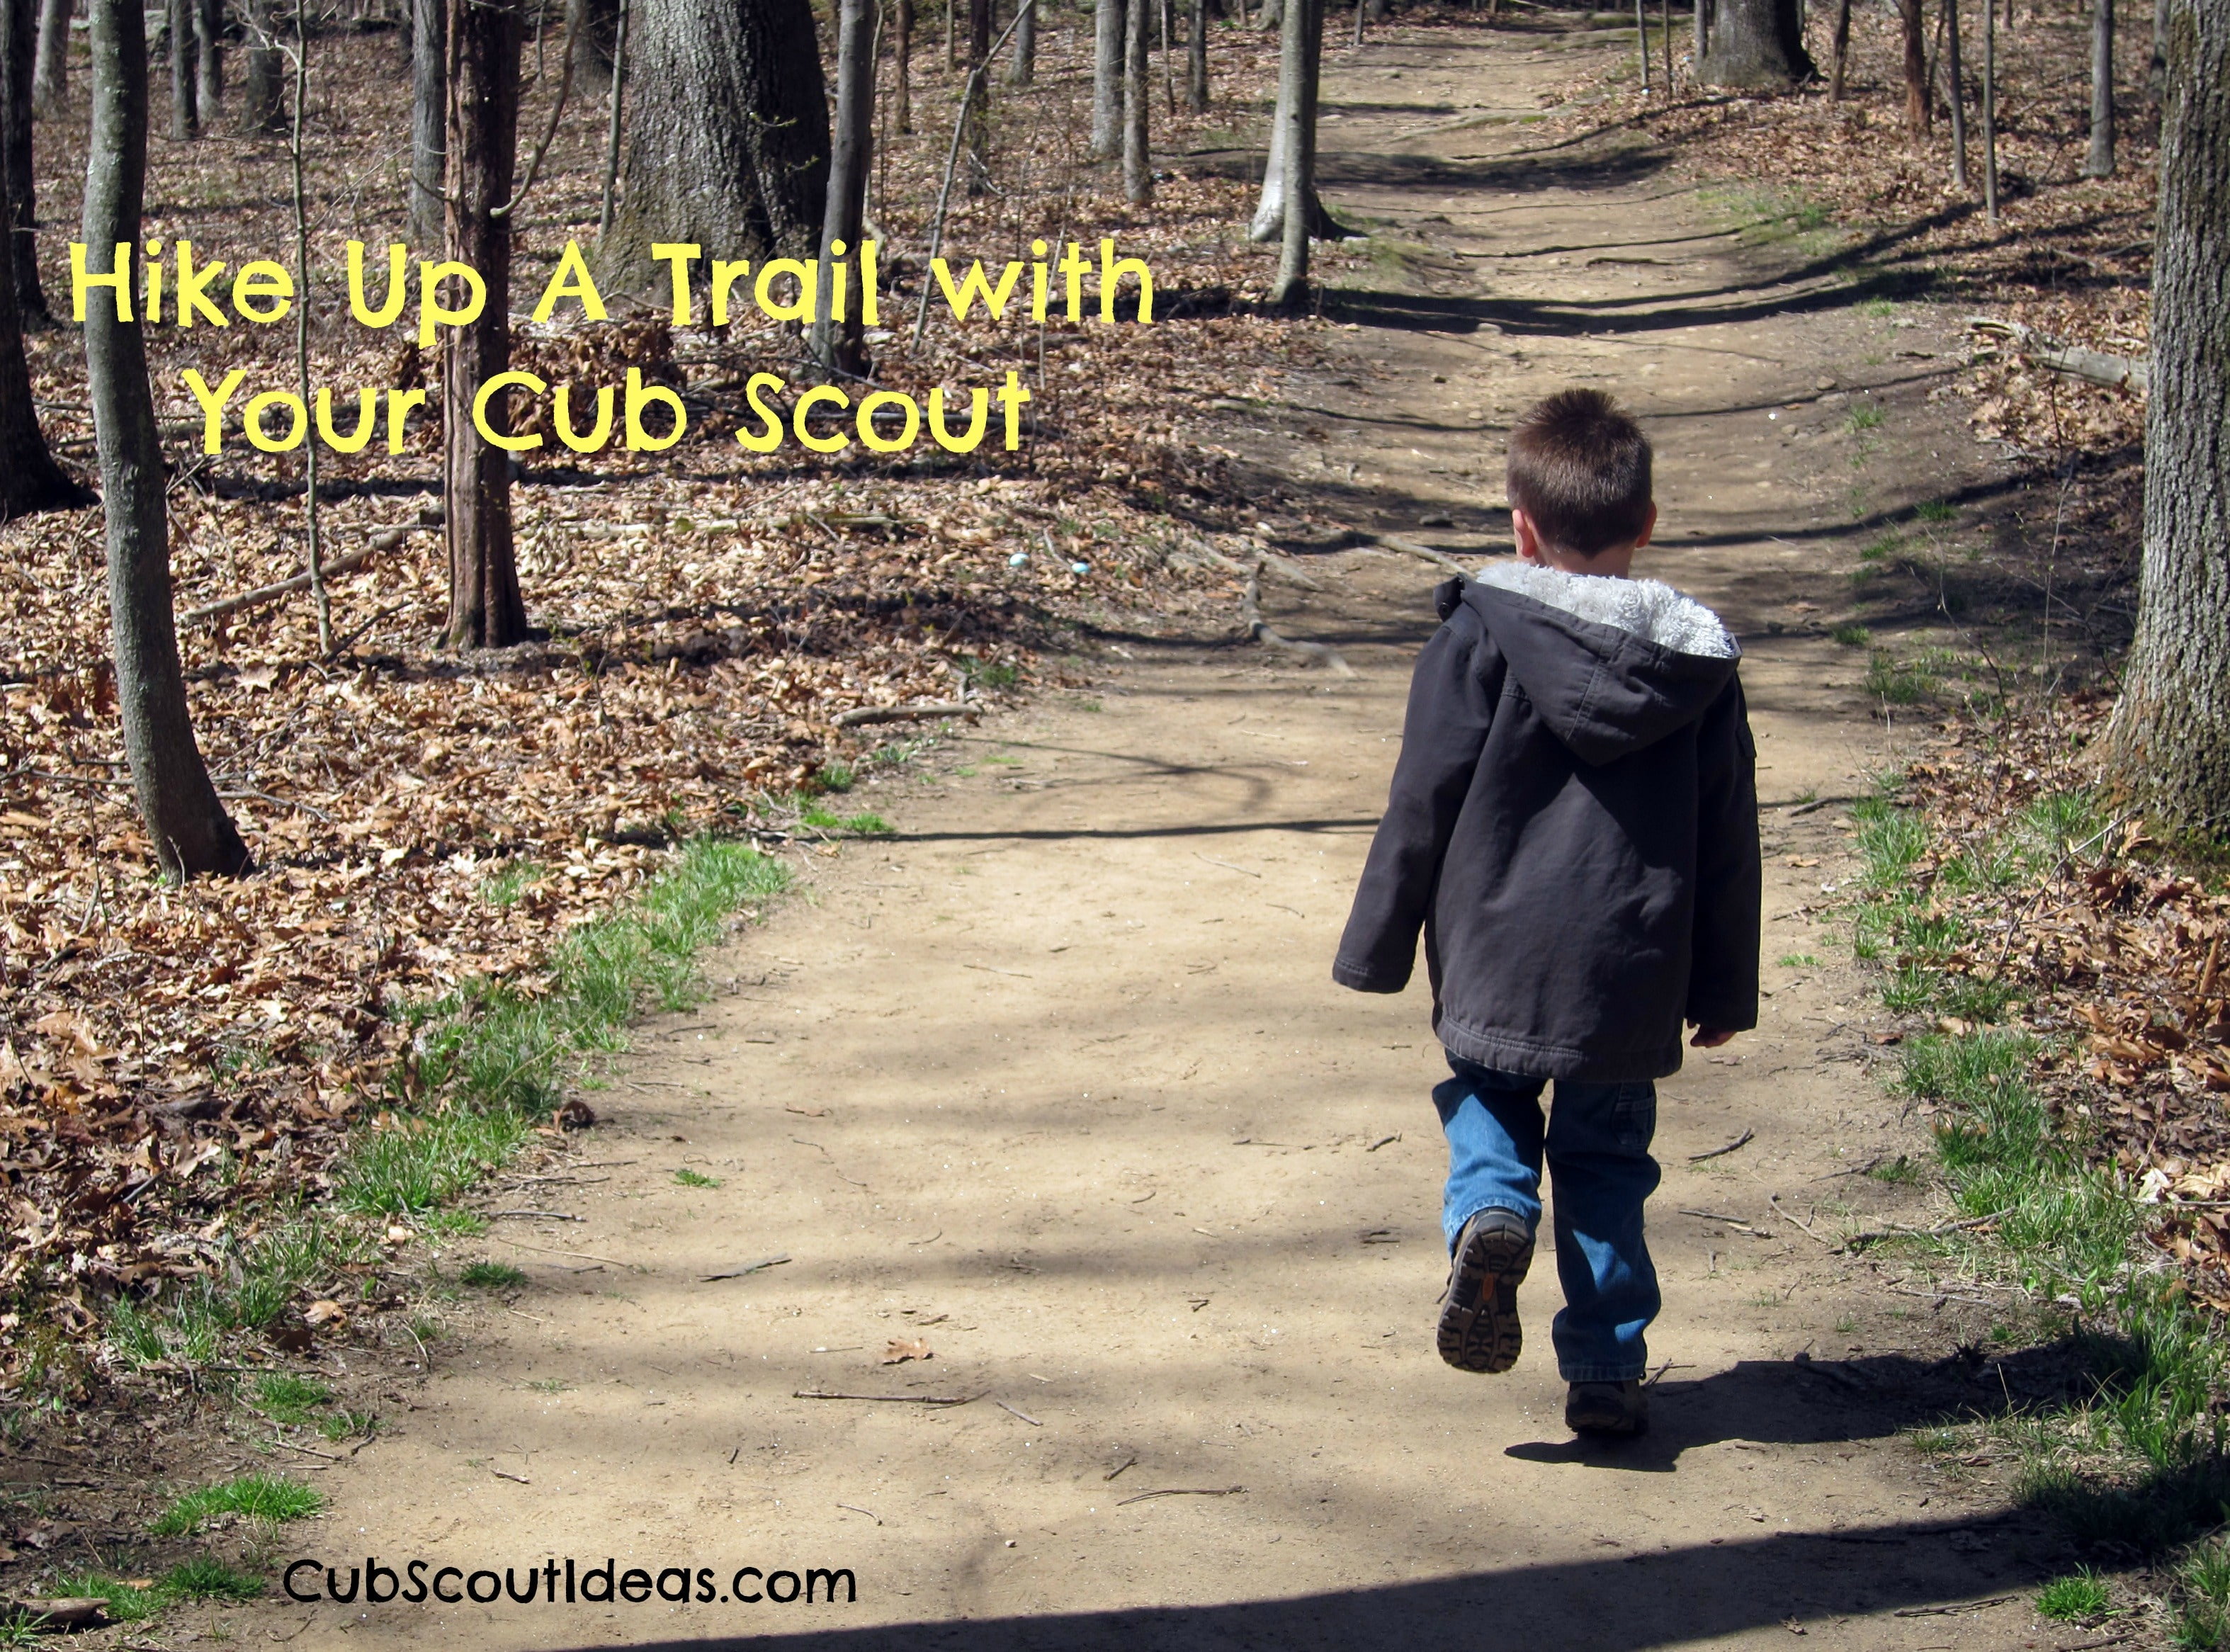 cub scout hiking with your cub scout